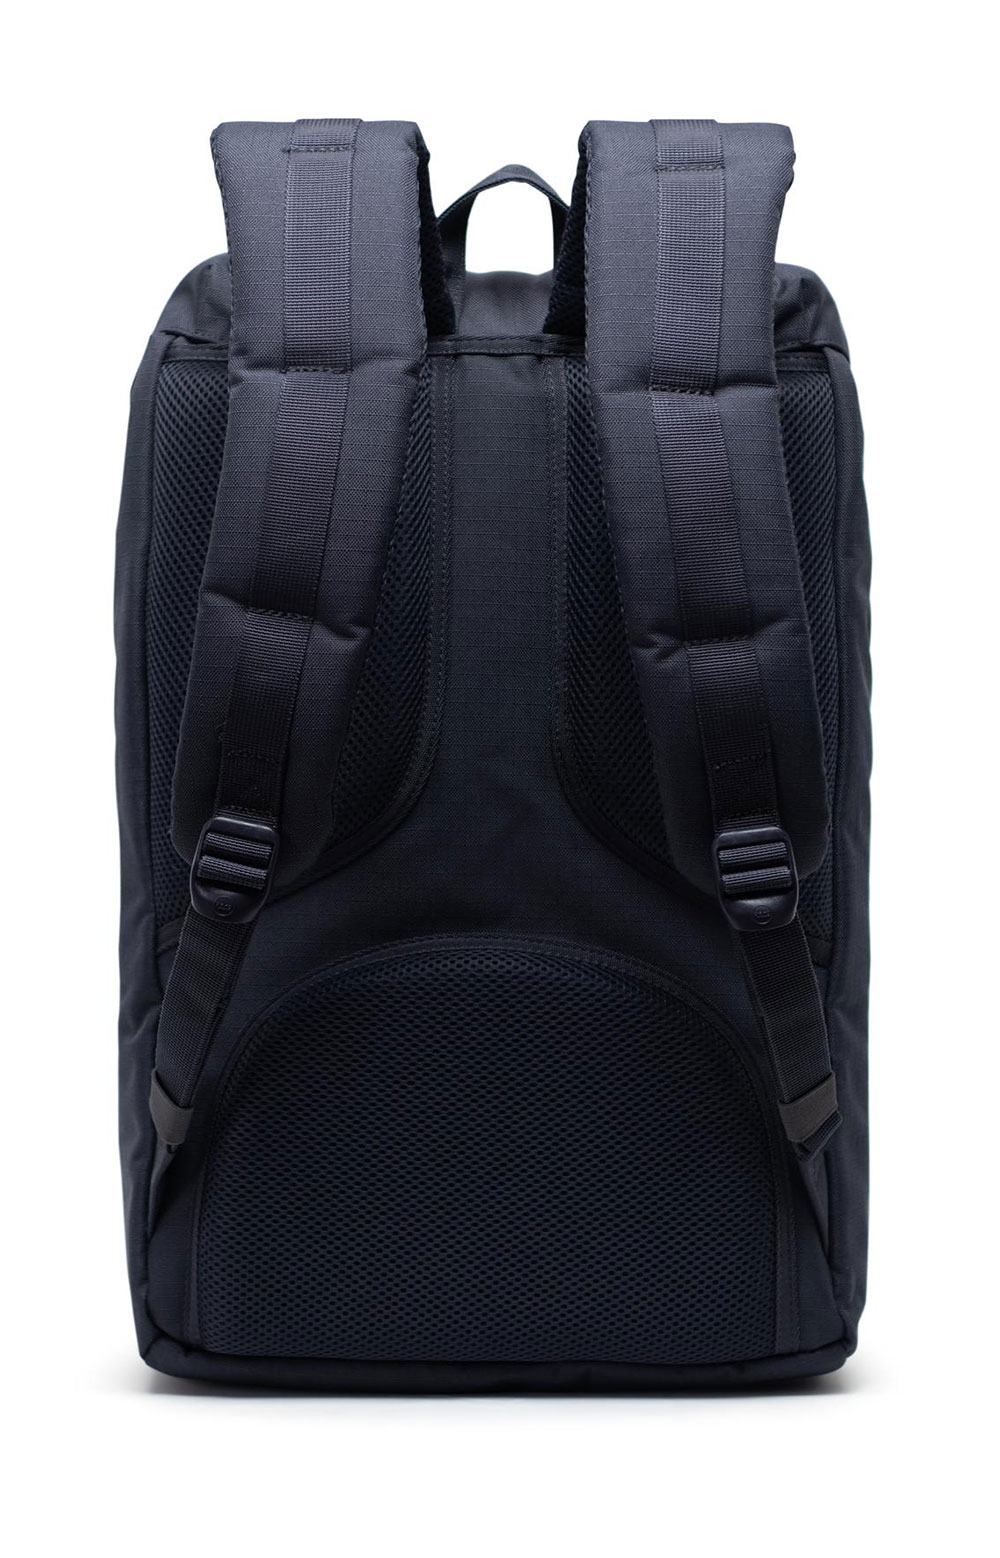 Little America Backpack - Periscope Ripstop  4